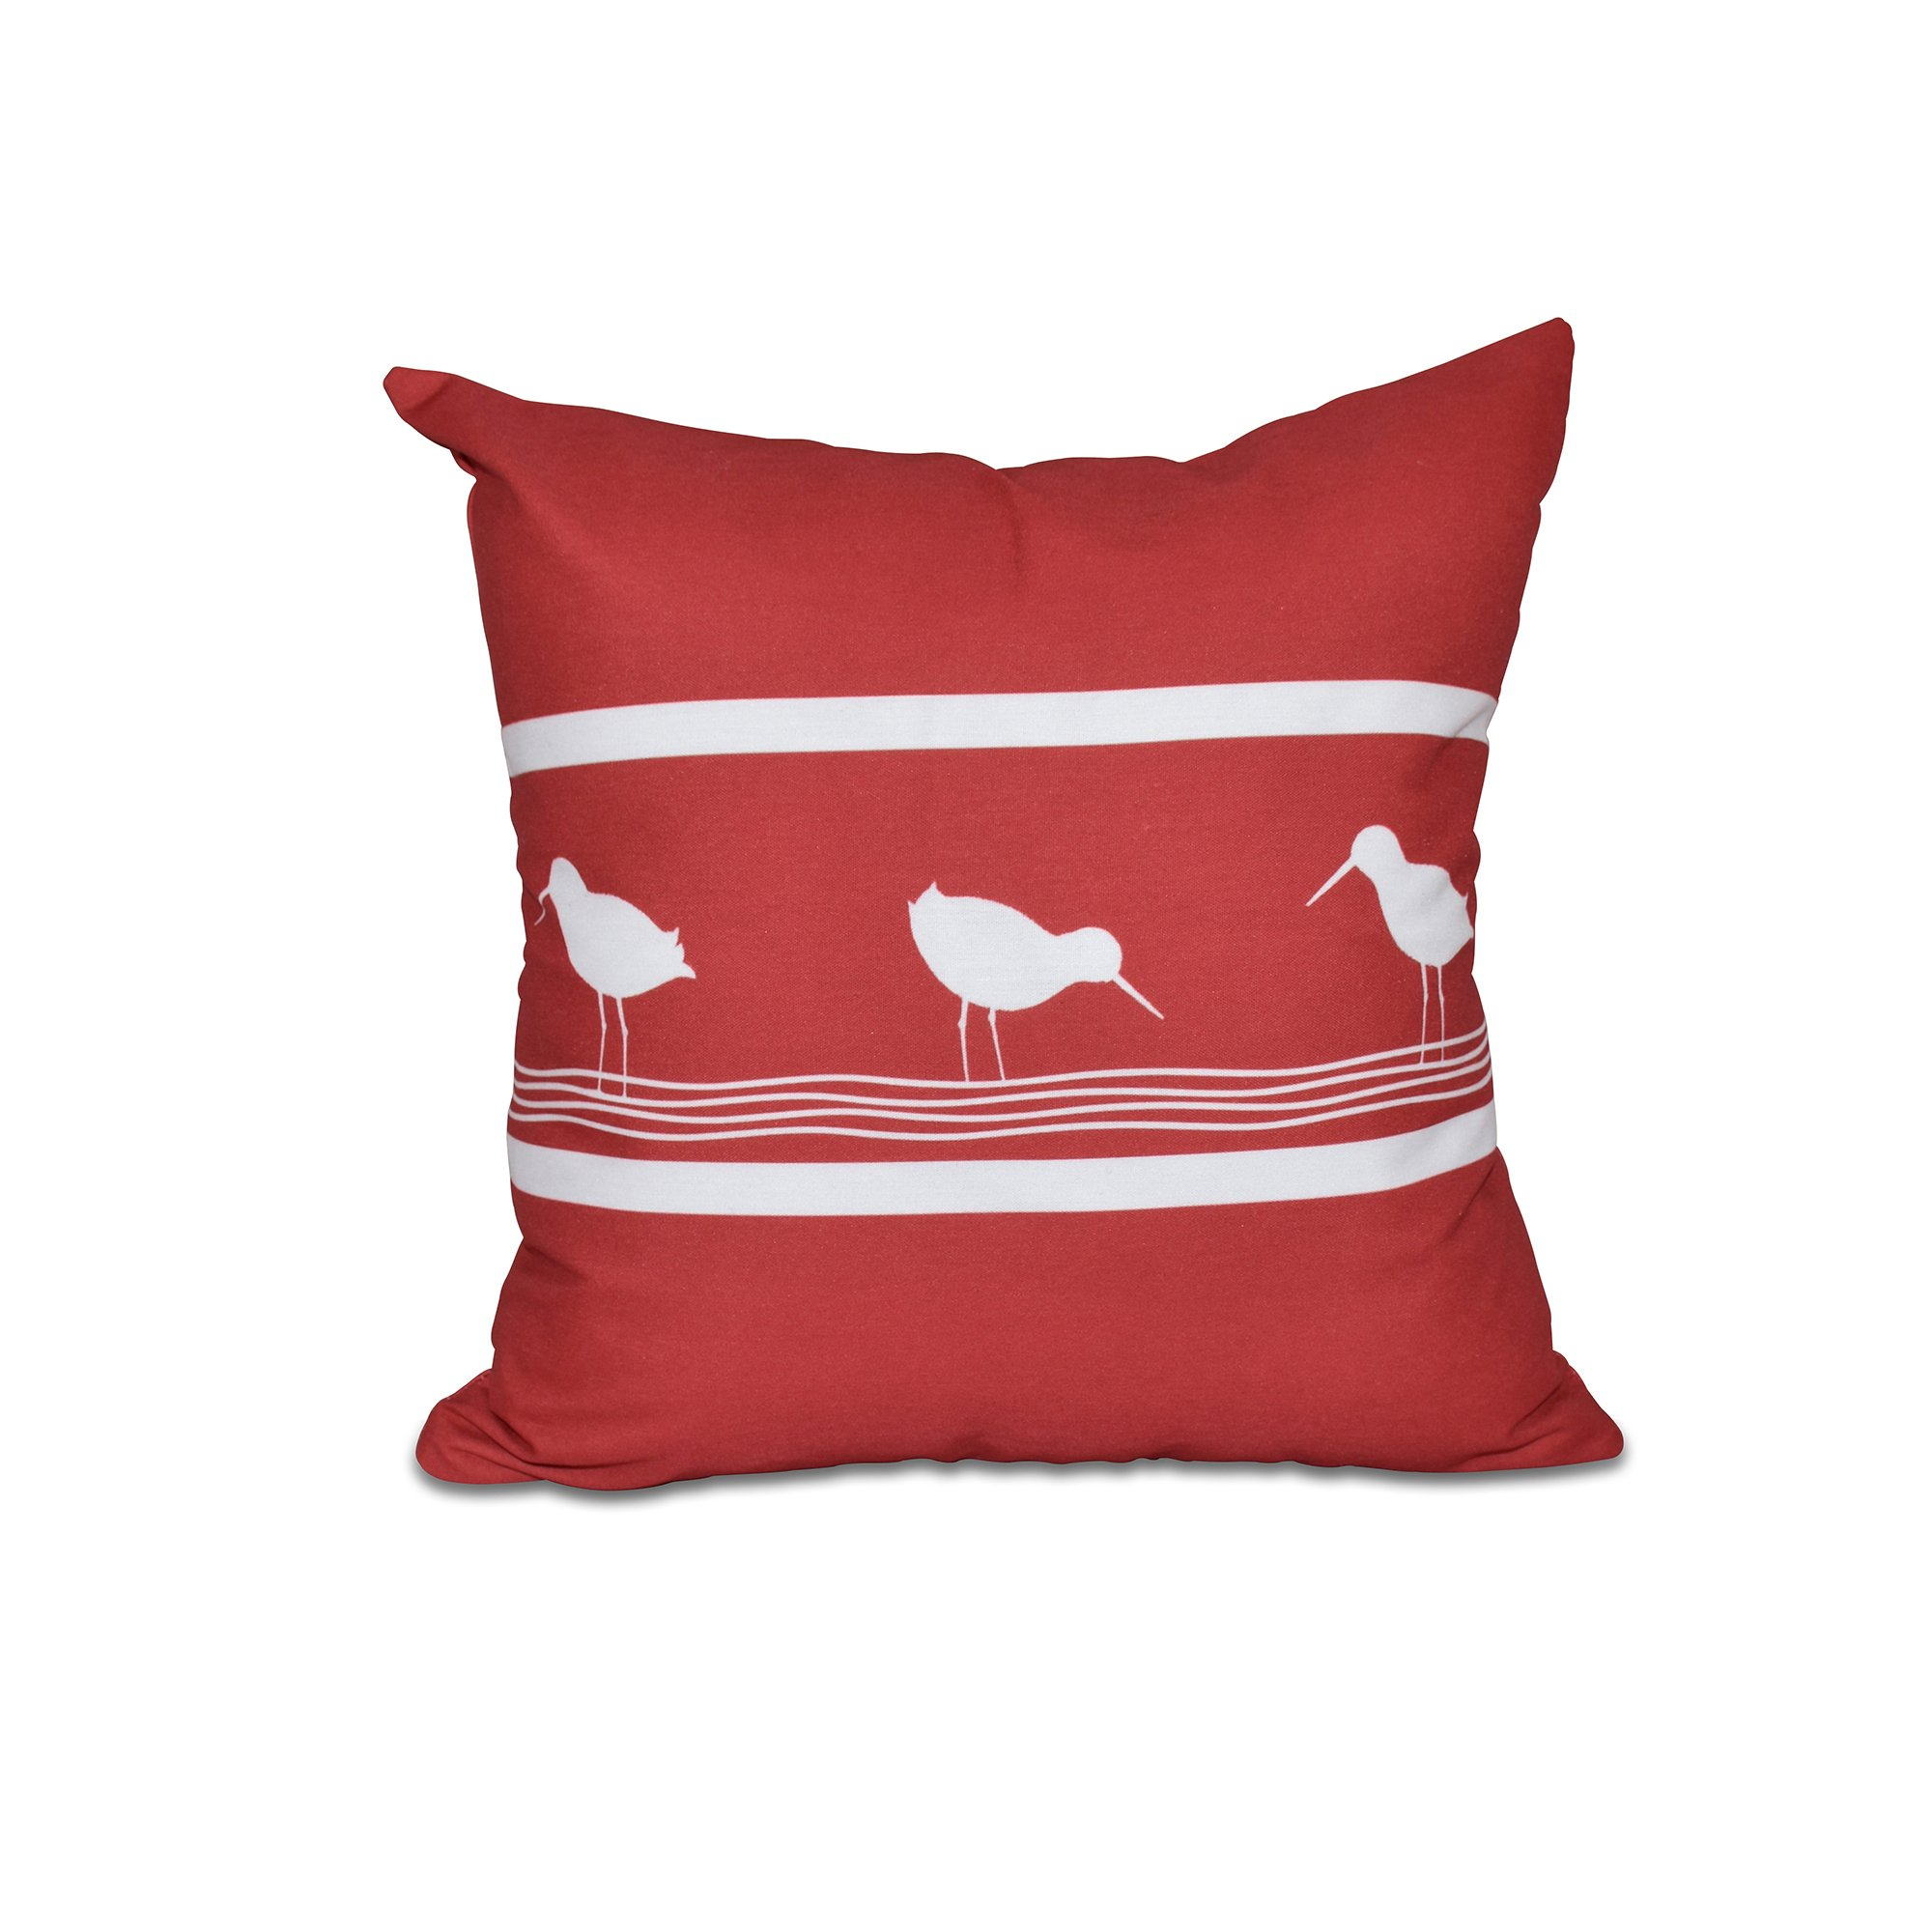 E by design 20 x 20-inch, Birdwalk, Animal Print Pillow, Red by E by design (Image #1)